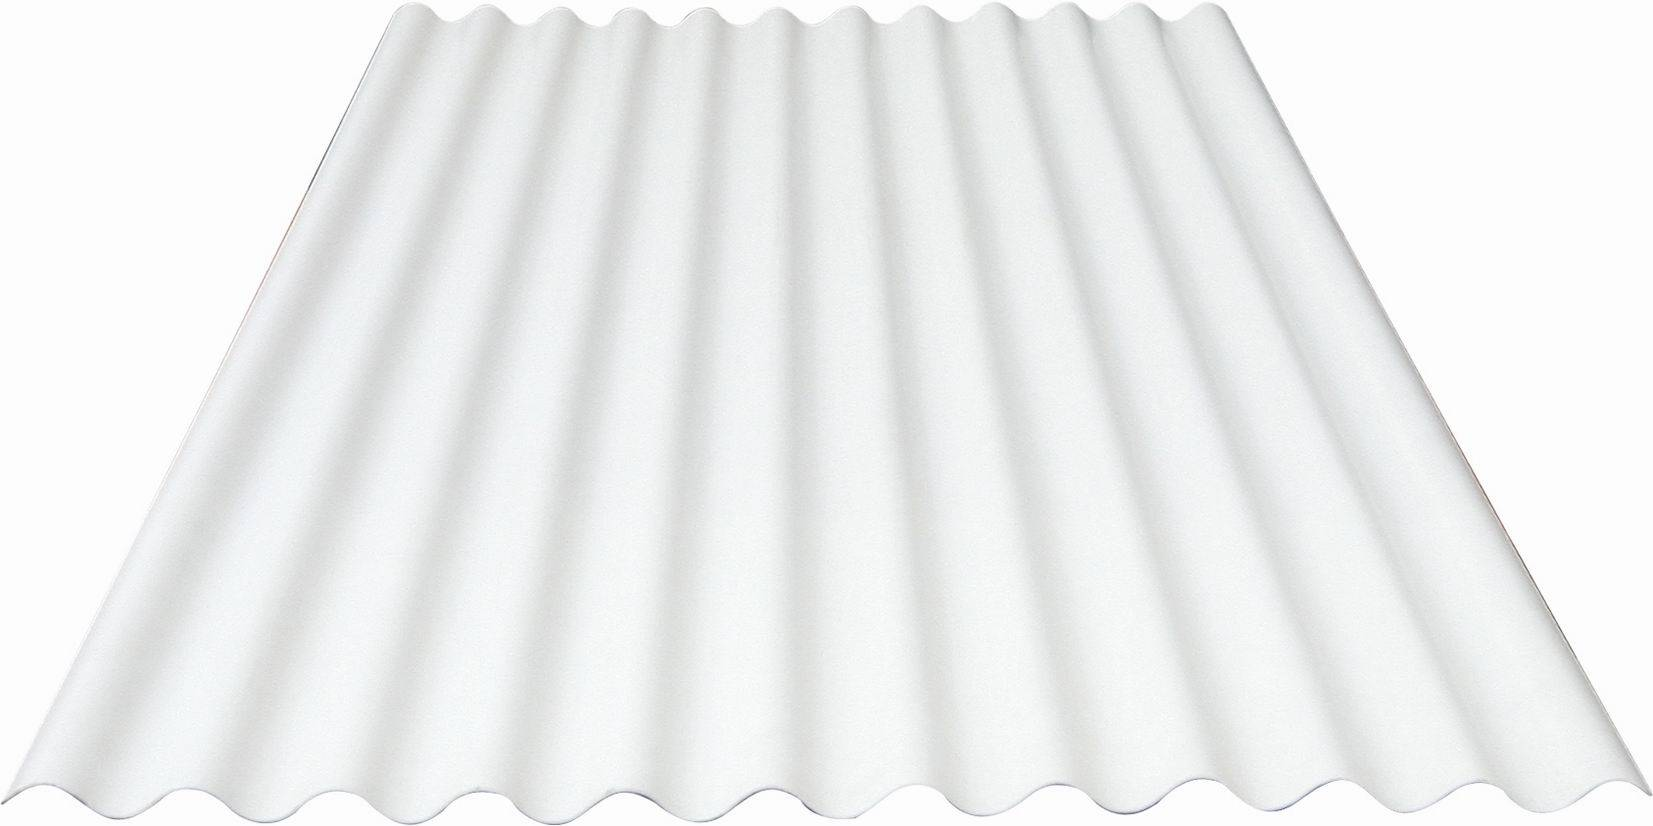 Pitched Roof Insulation White Corrugated Plastic Sheet